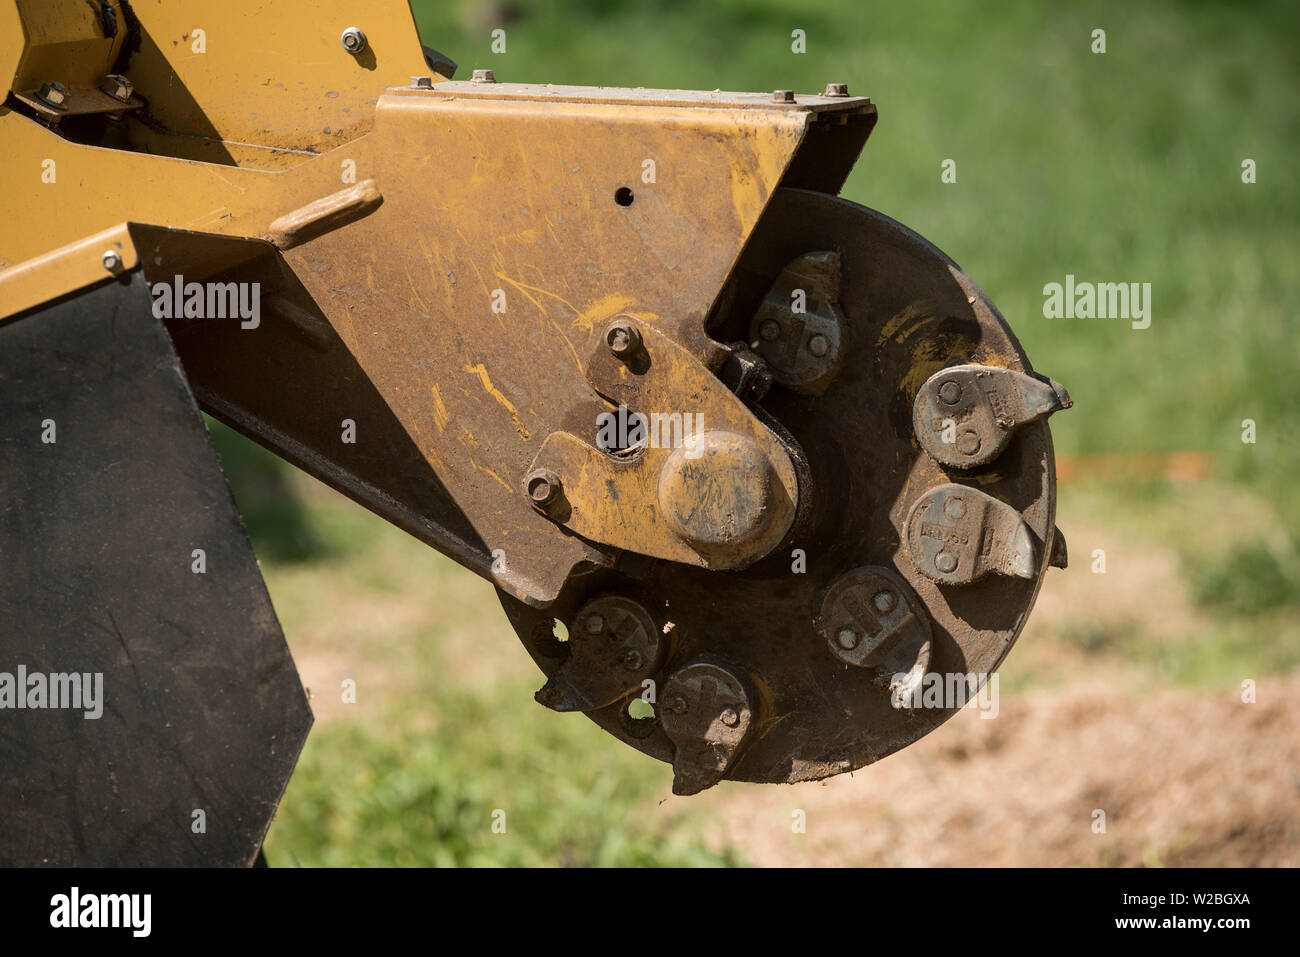 A close up of the cutting head of an industrial stump grinder. - Stock Image